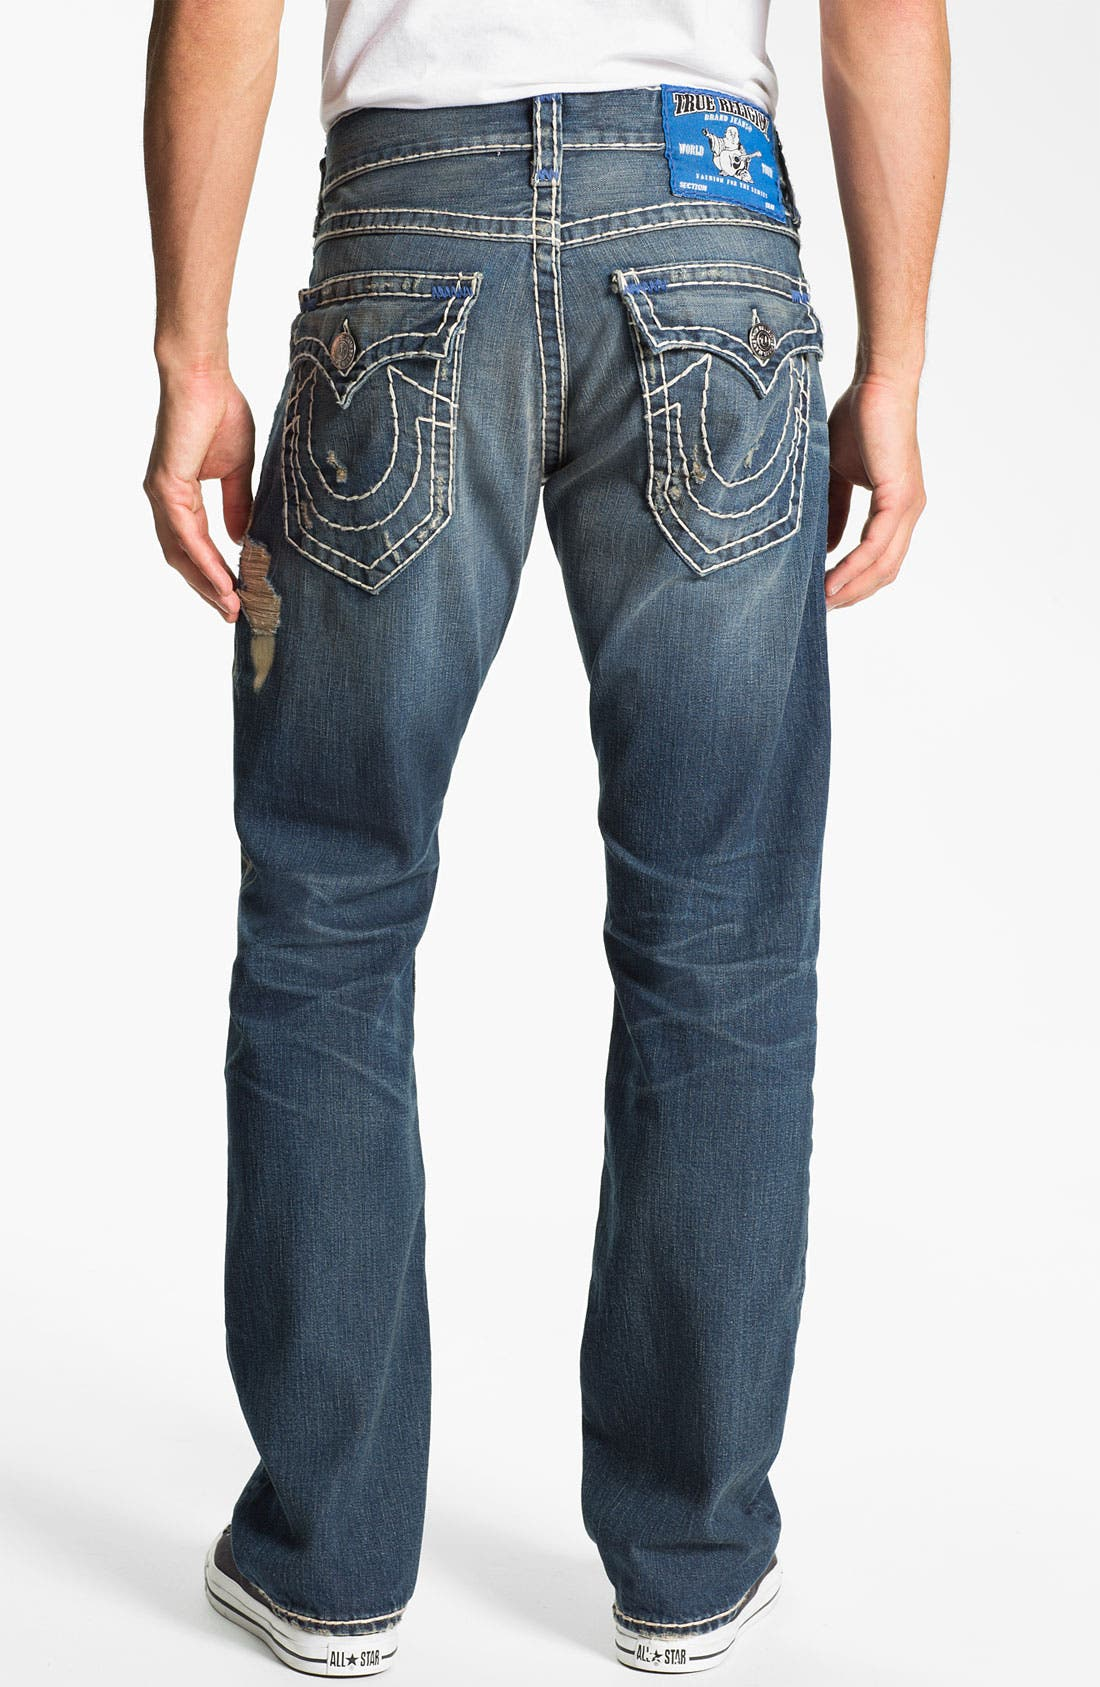 Alternate Image 1 Selected - True Religion Brand Jeans 'Ricky' Straight Leg Jeans (Old Country)